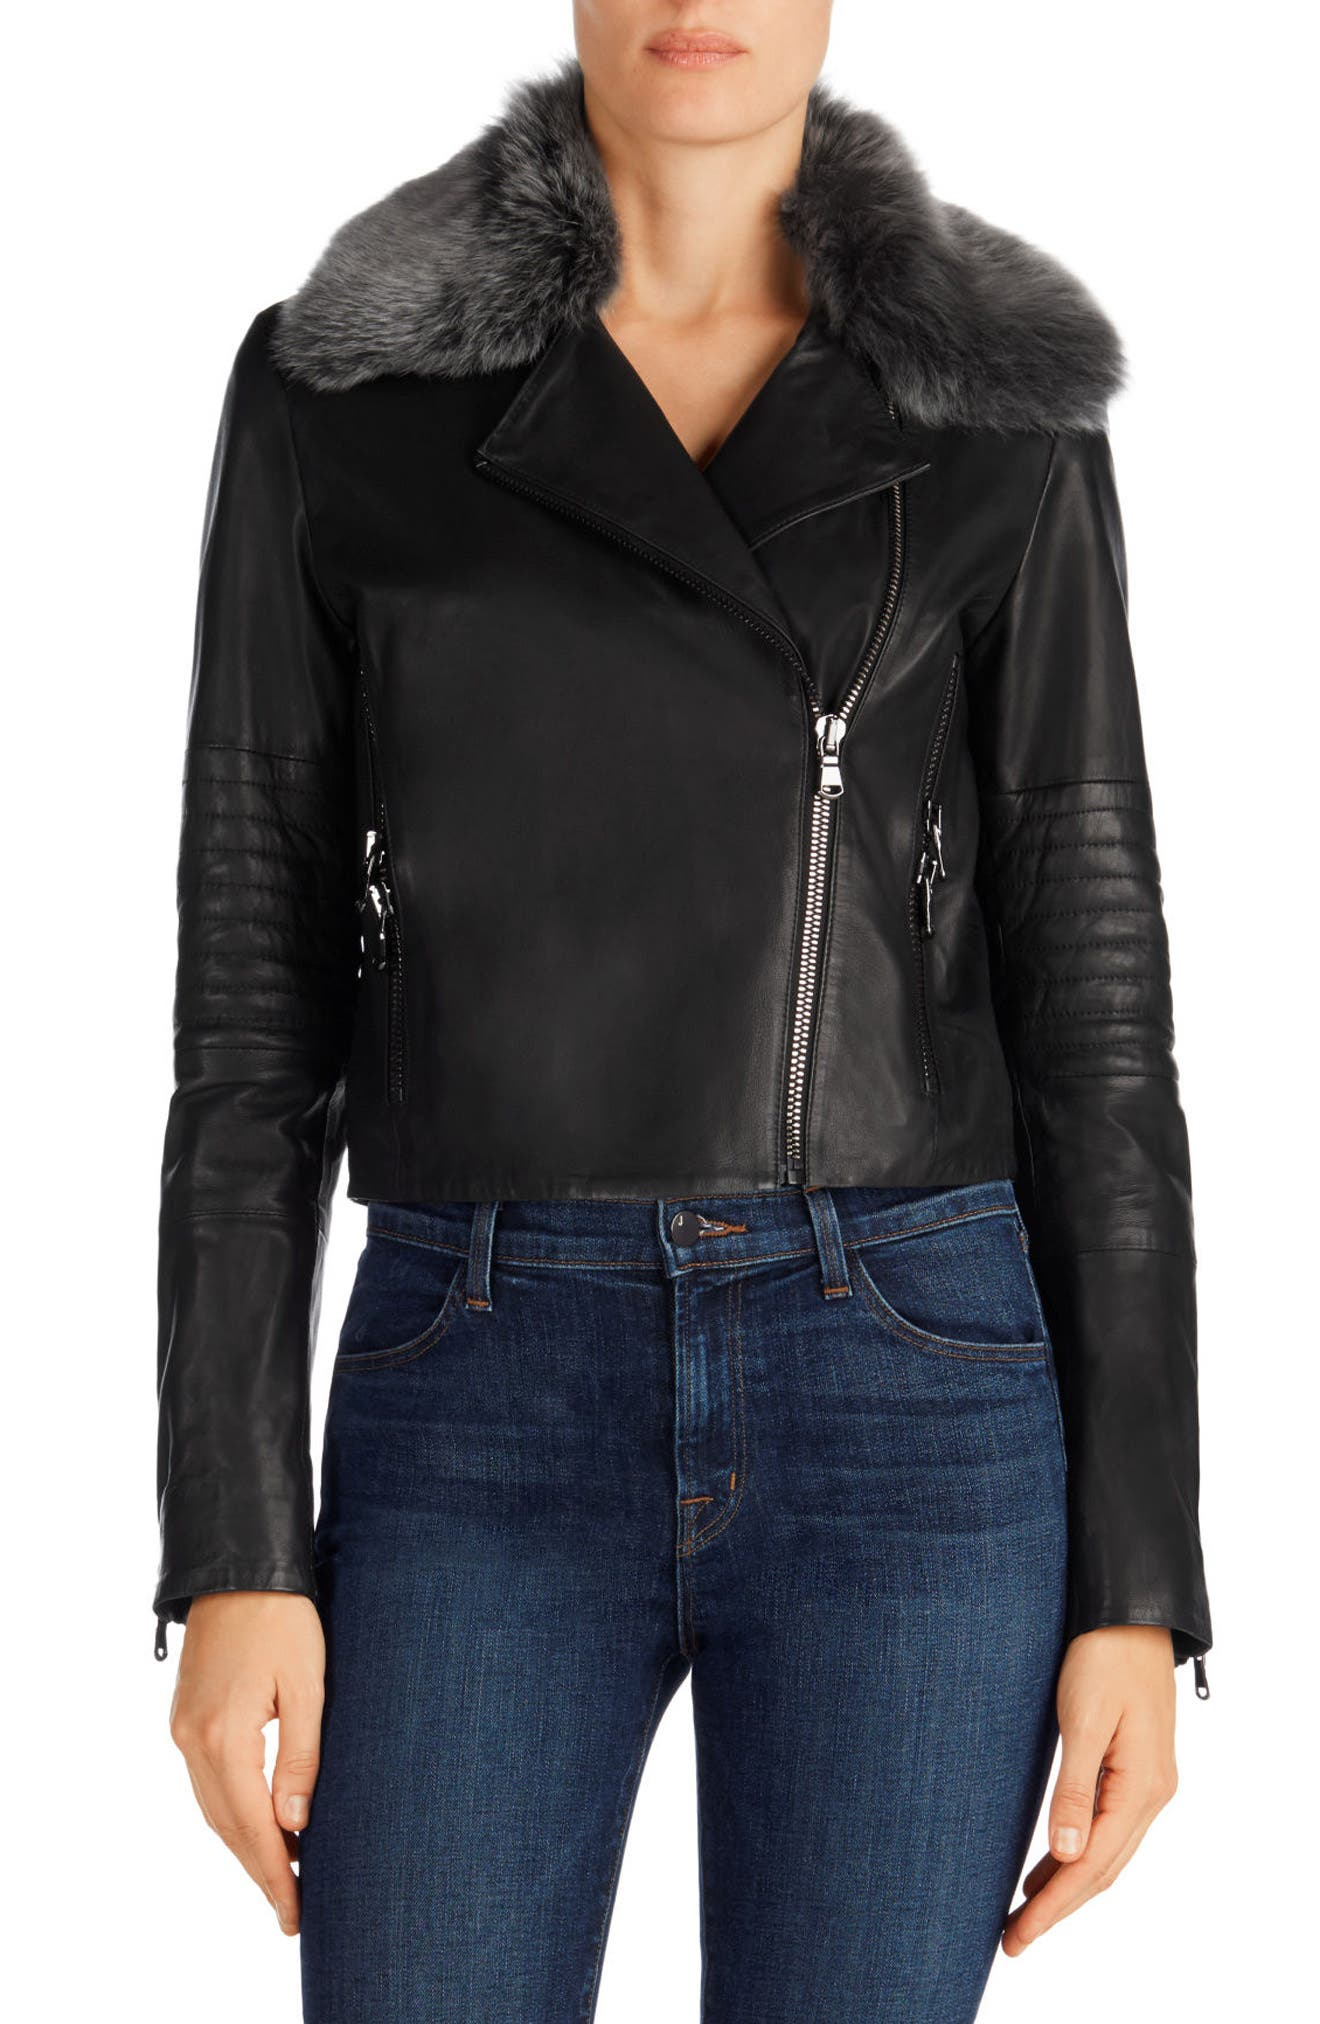 Aiah Leather Moto Jacket with Detachable Lamb Shearling Collar, Main, color, 001